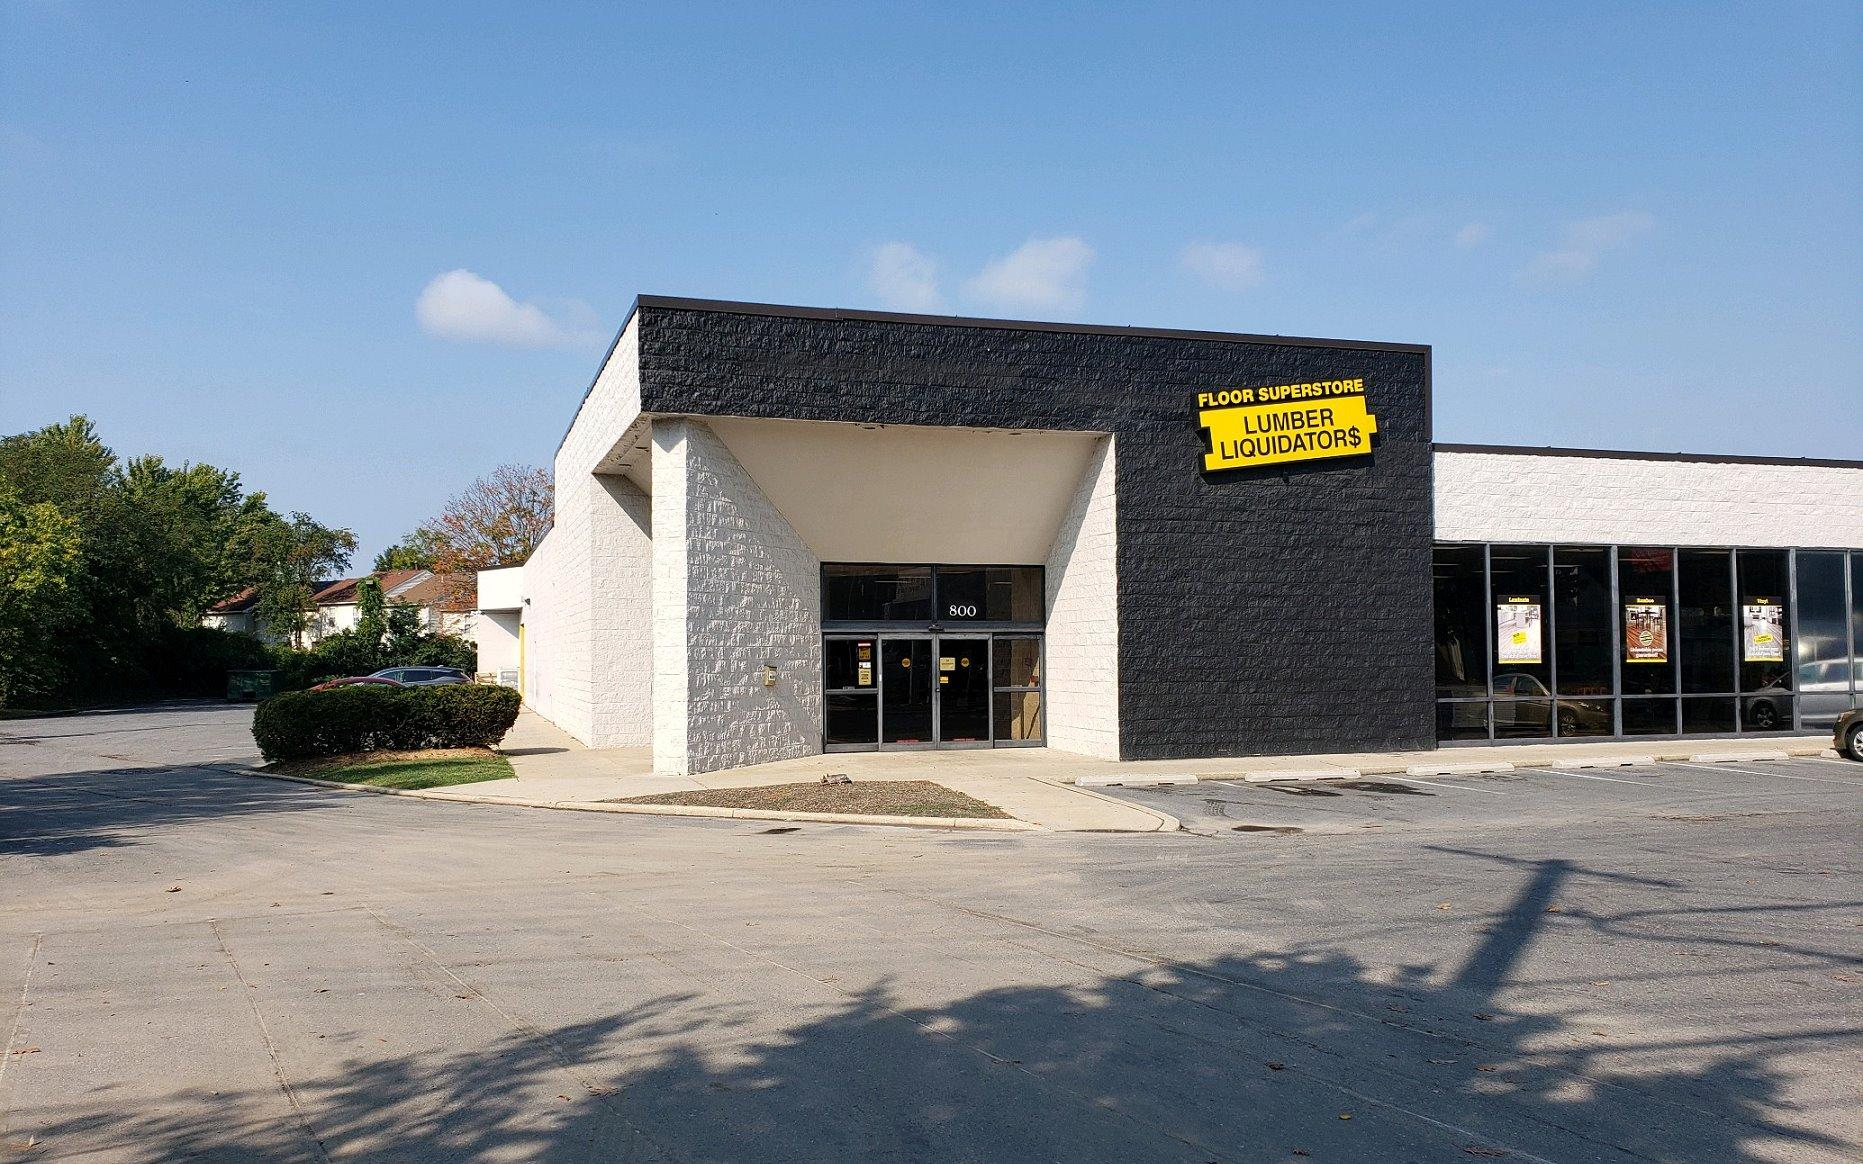 LL Flooring #1320 Rockville | 800 Hungerford Drive | Storefront